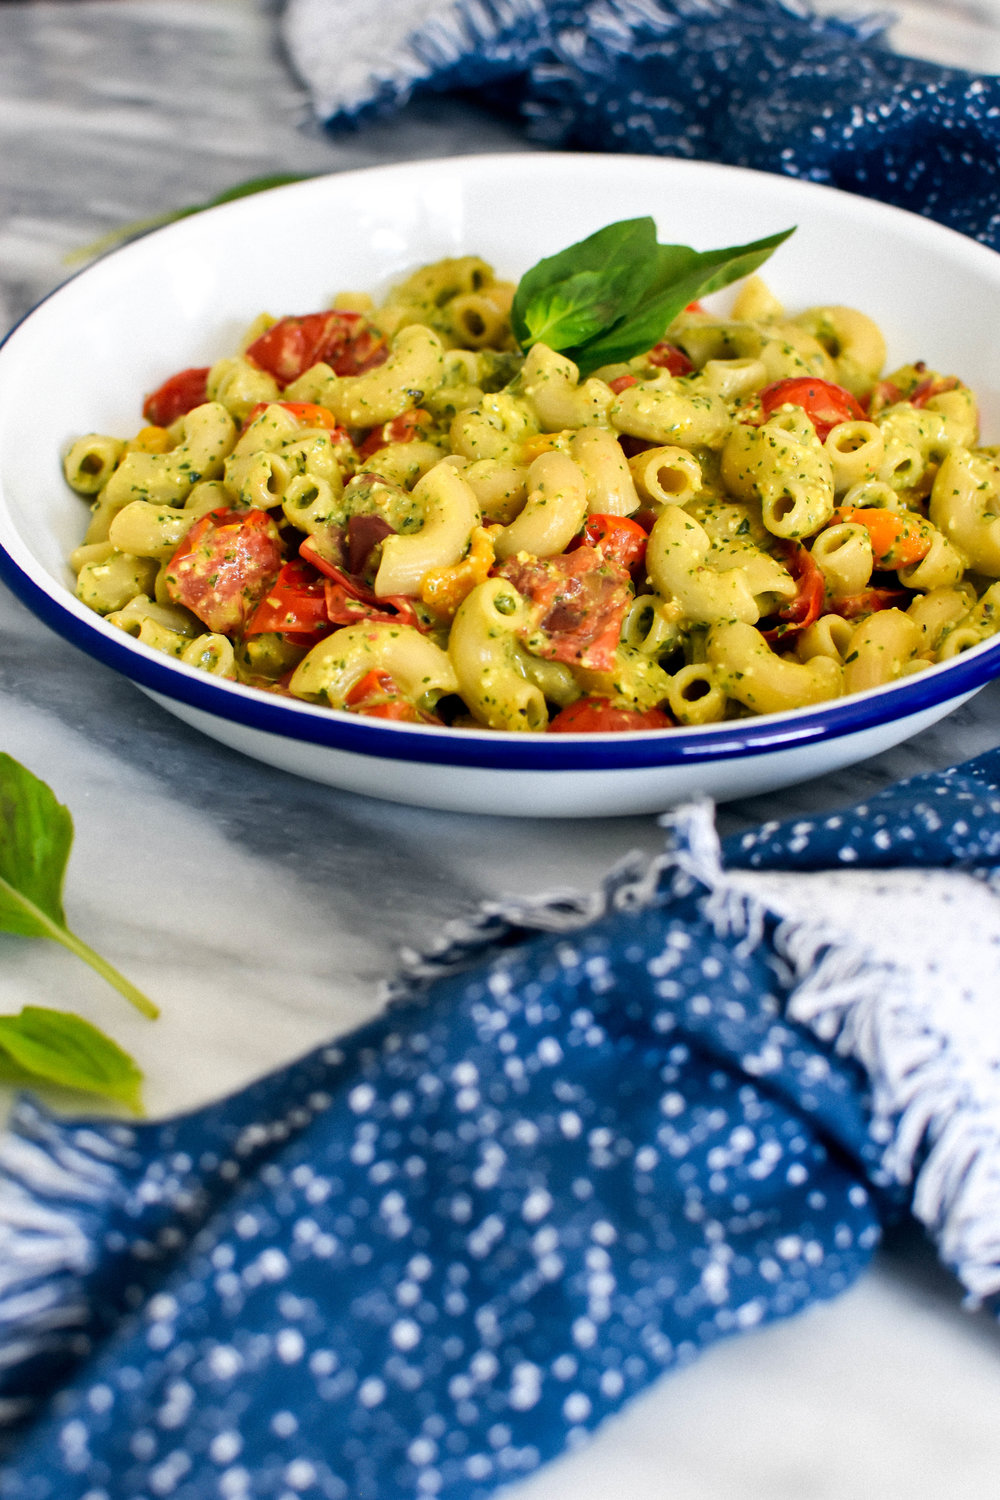 Pasta elbows with pesto and fresh tomatoes